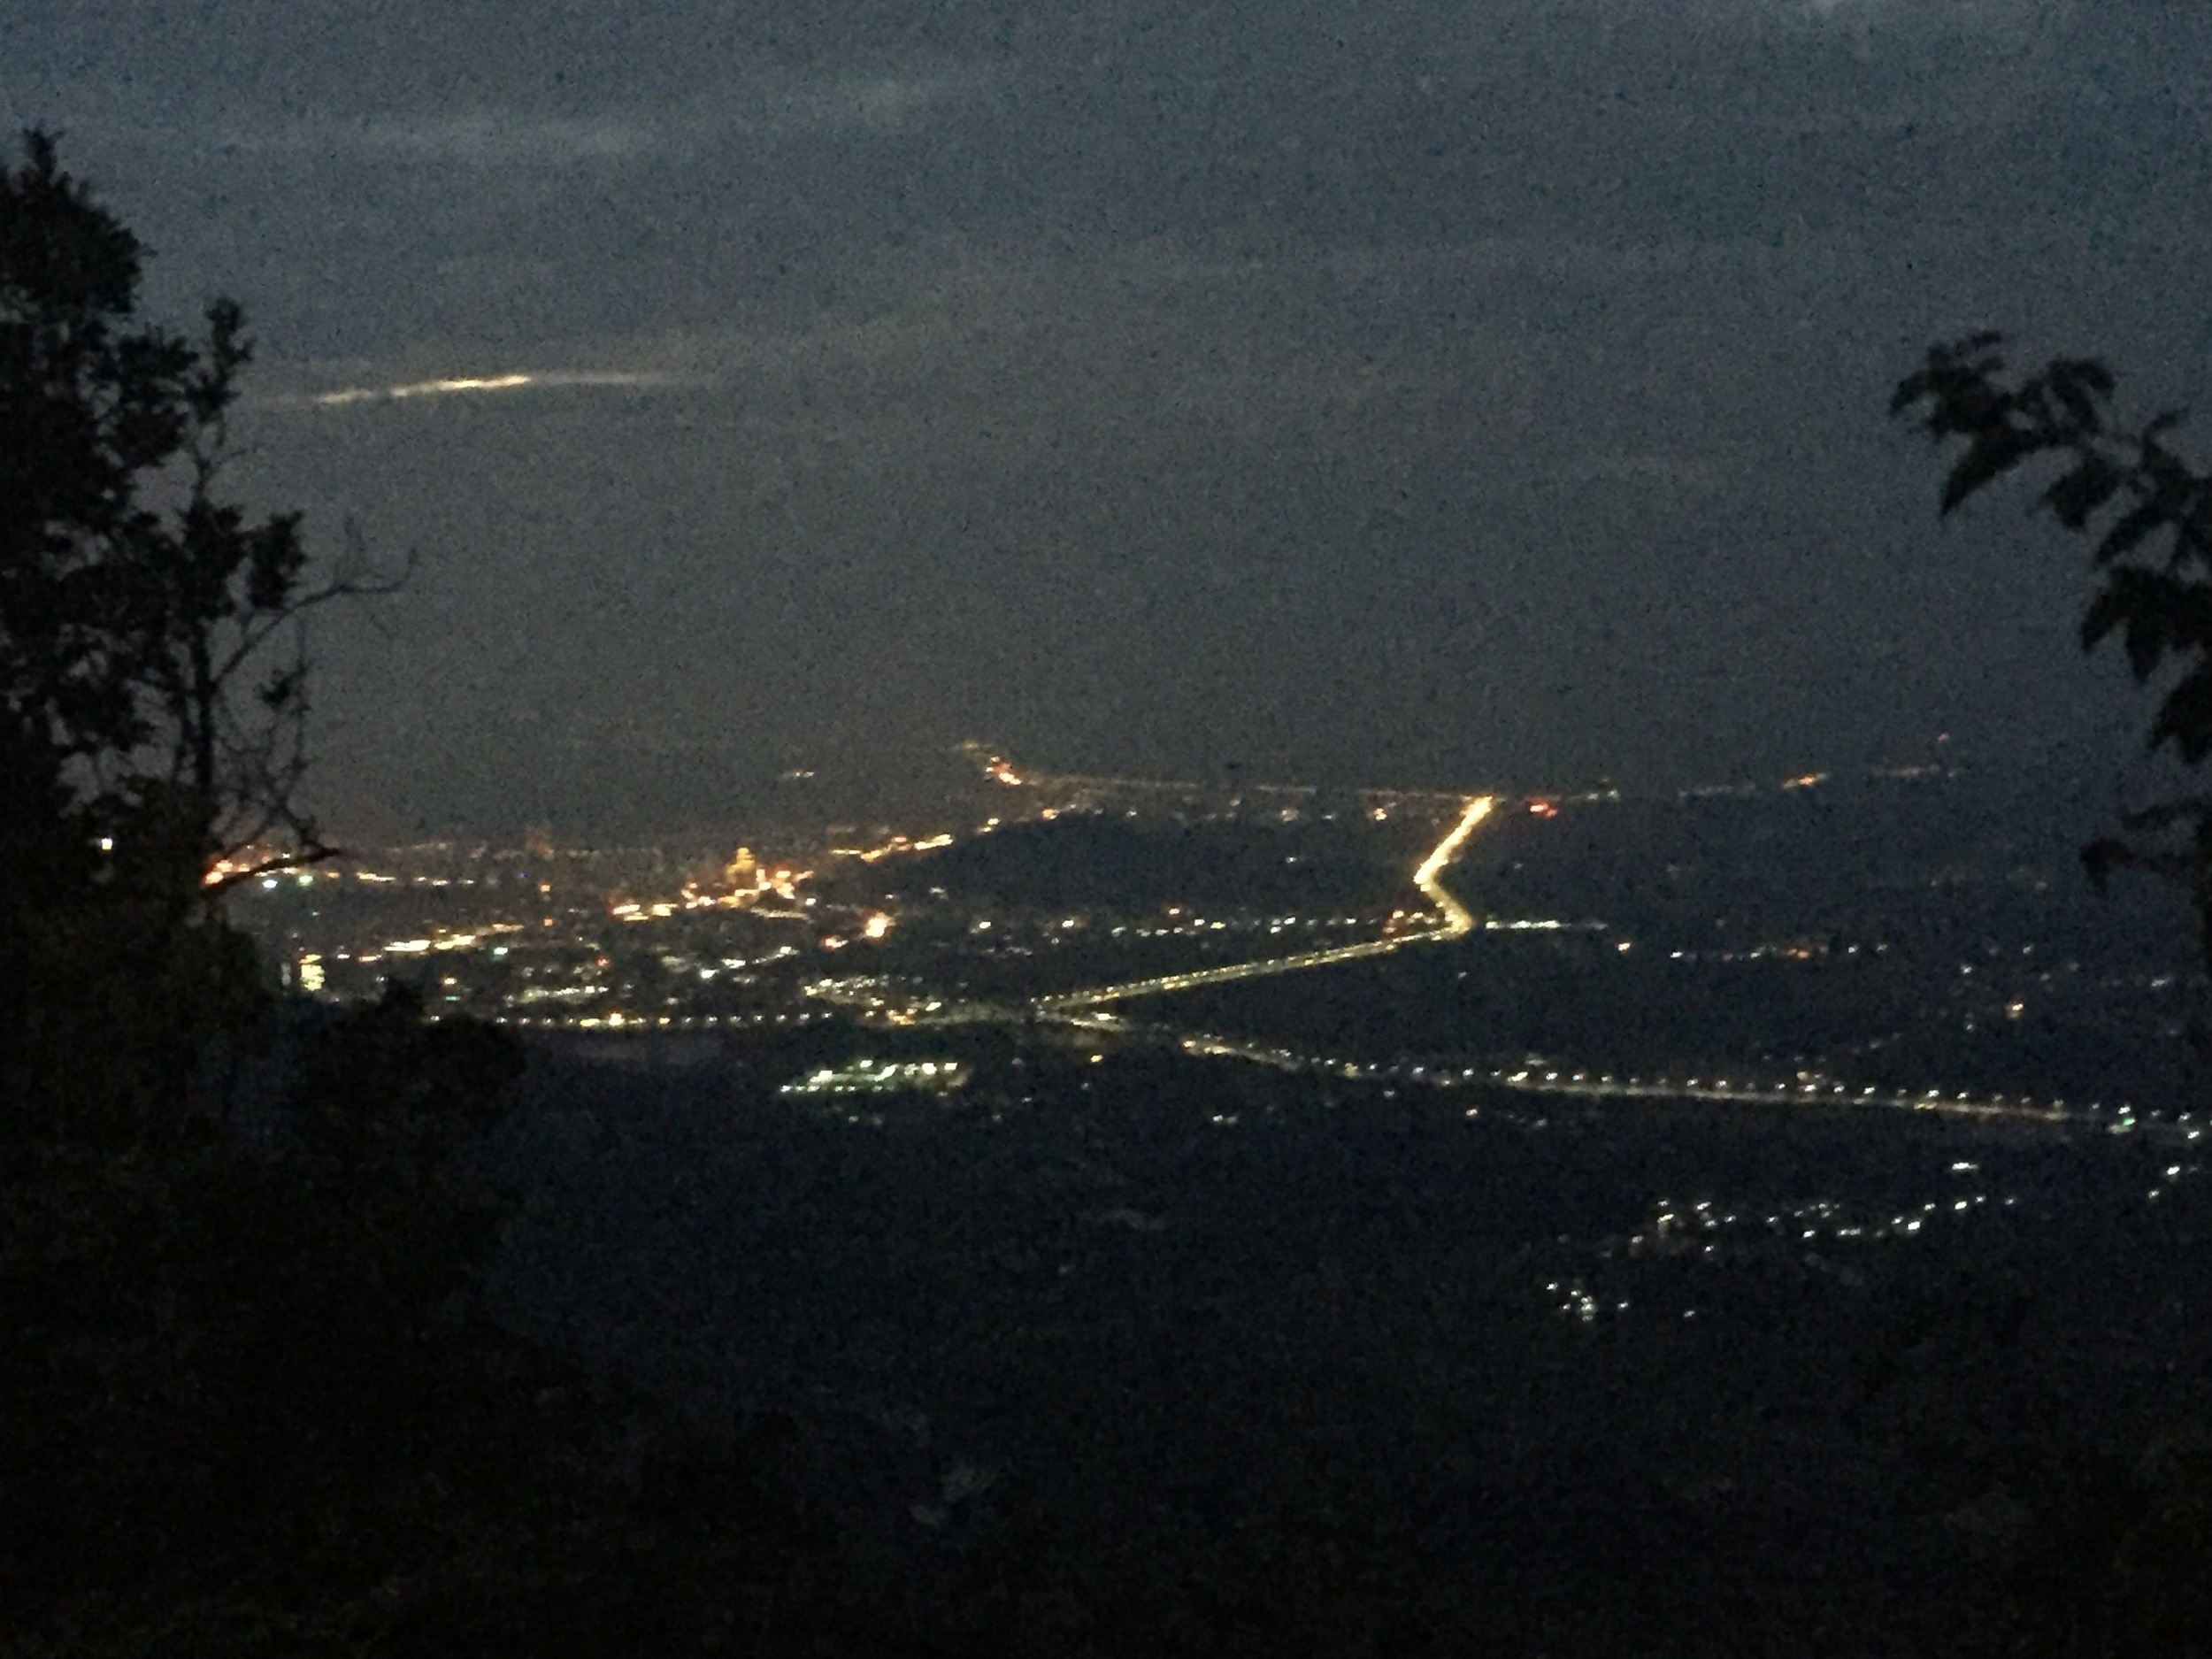 The city lights of Pingshan.